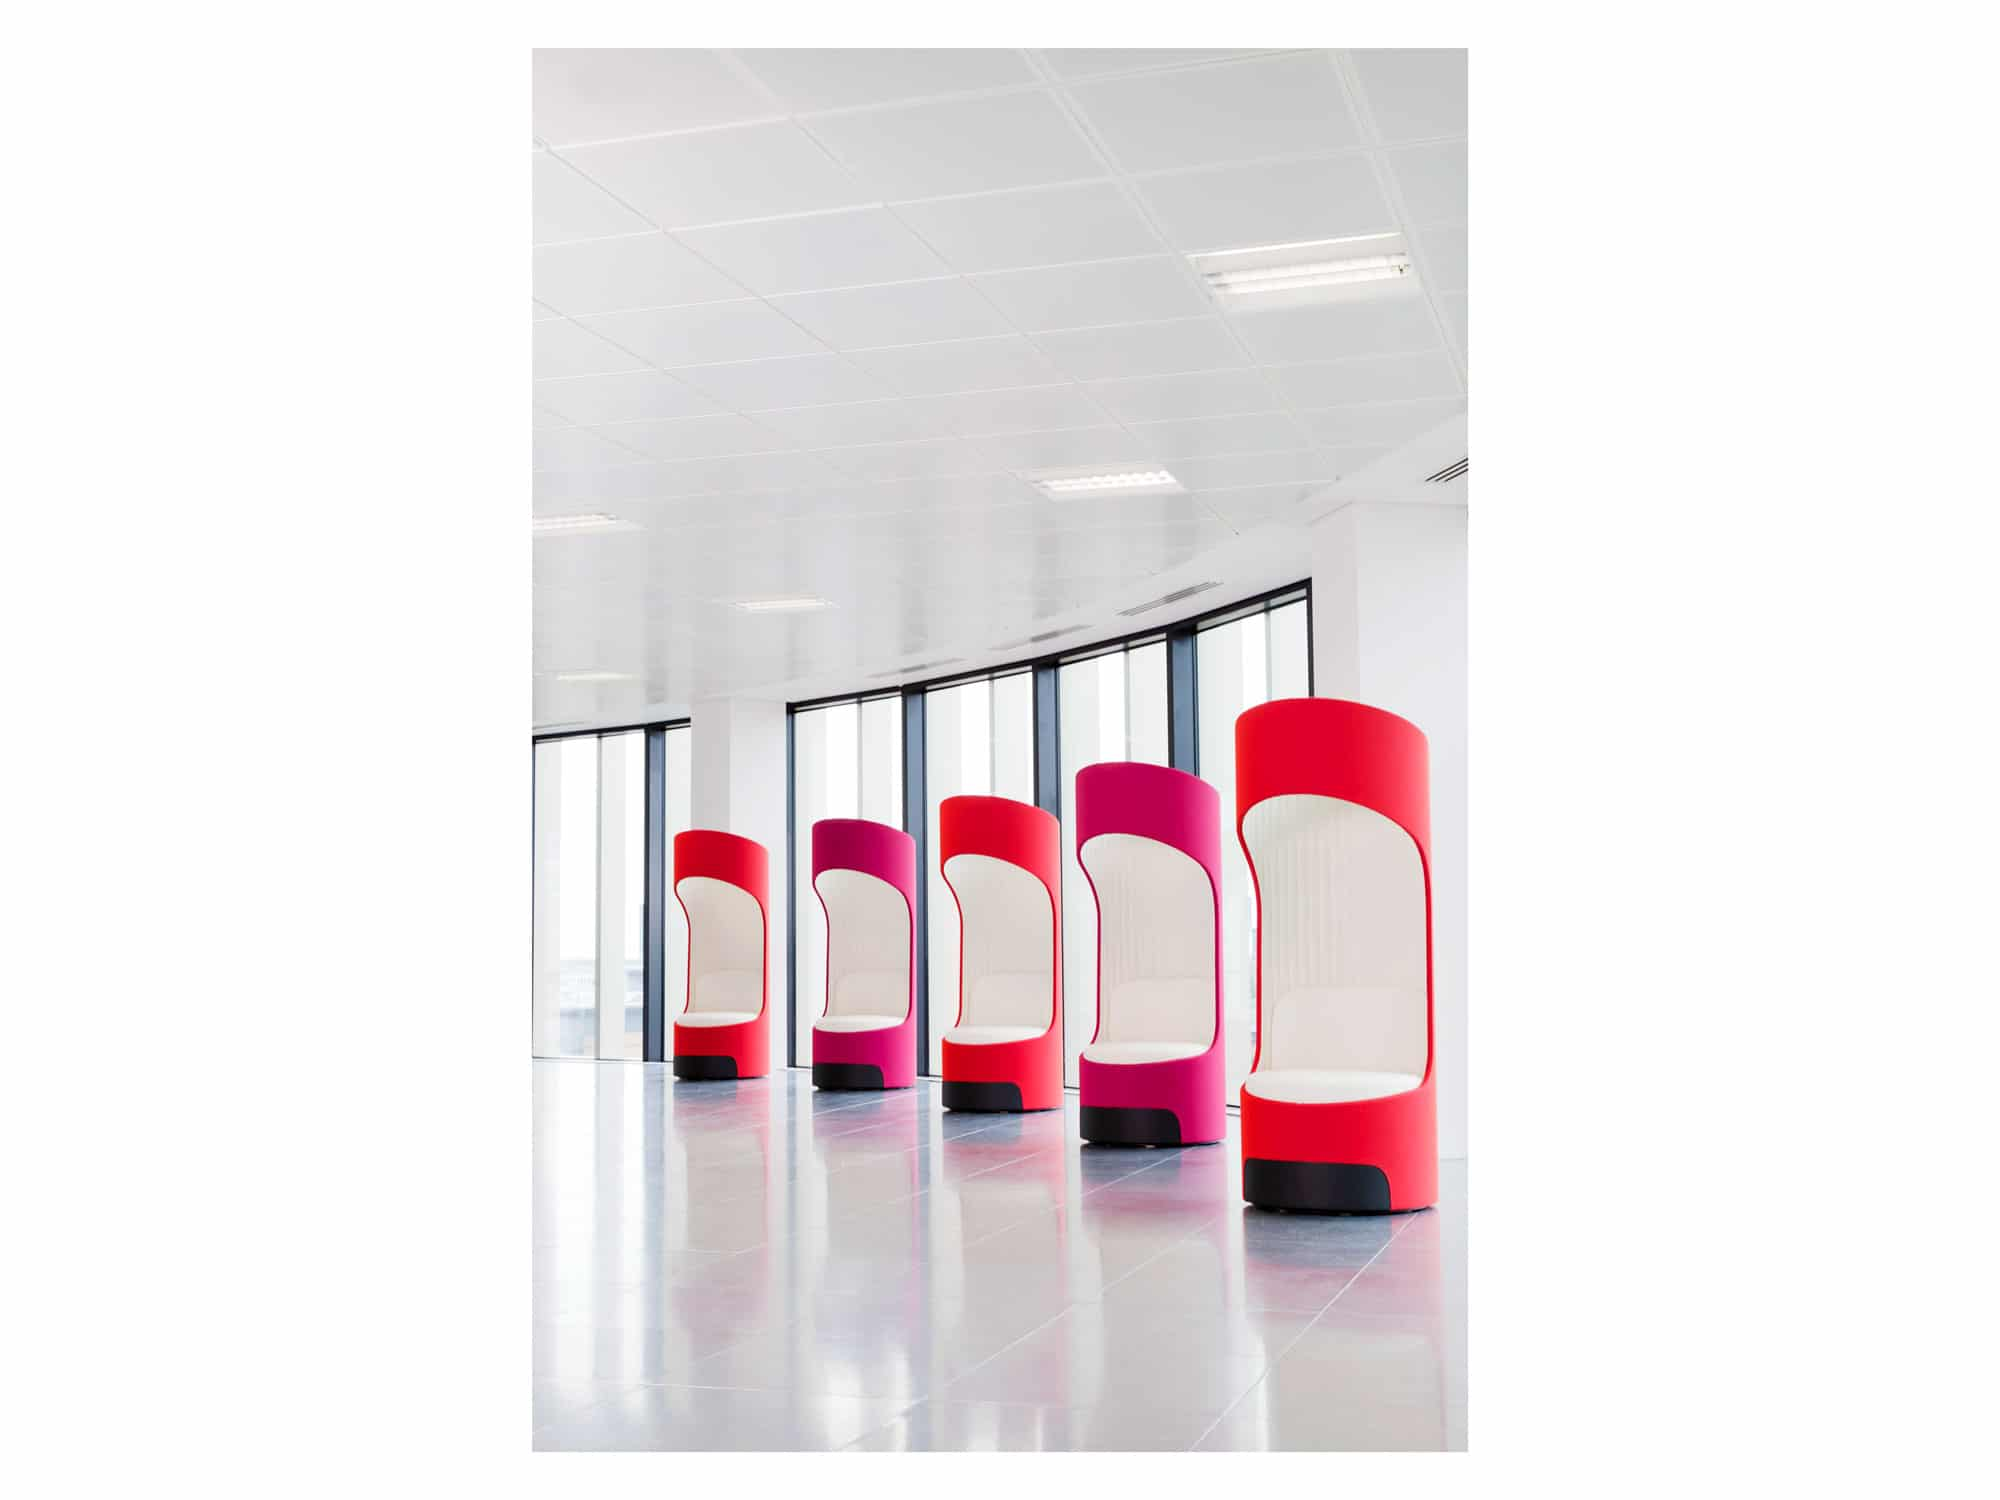 5 Cega acoustic seating pods